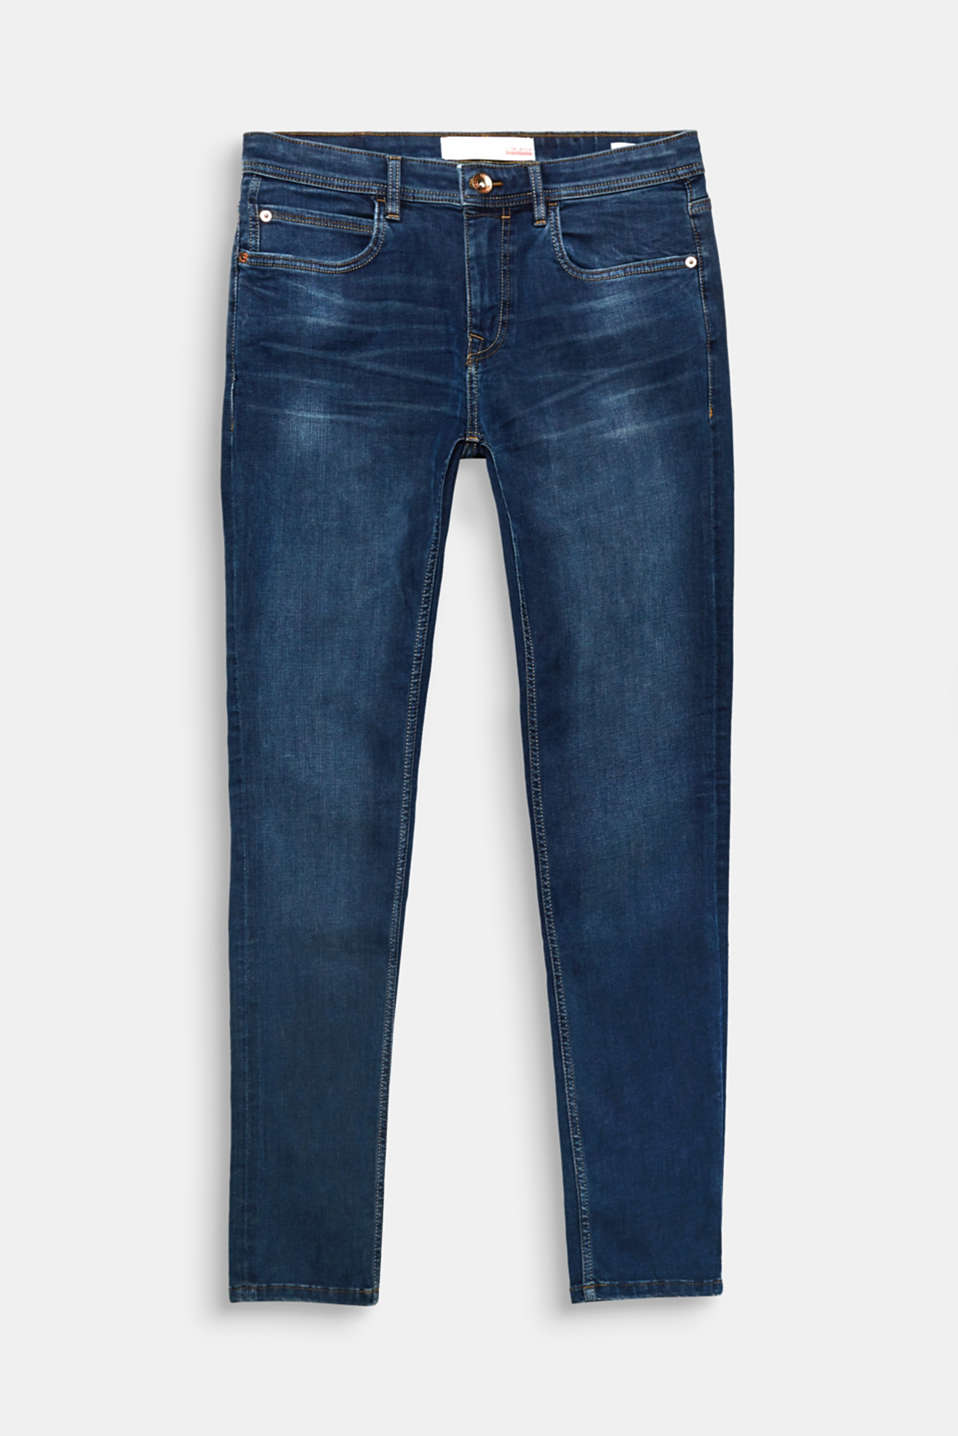 Dynamic denim comfort! Super stretch for comfort a and skinny cut make these jeans an everyday fave!